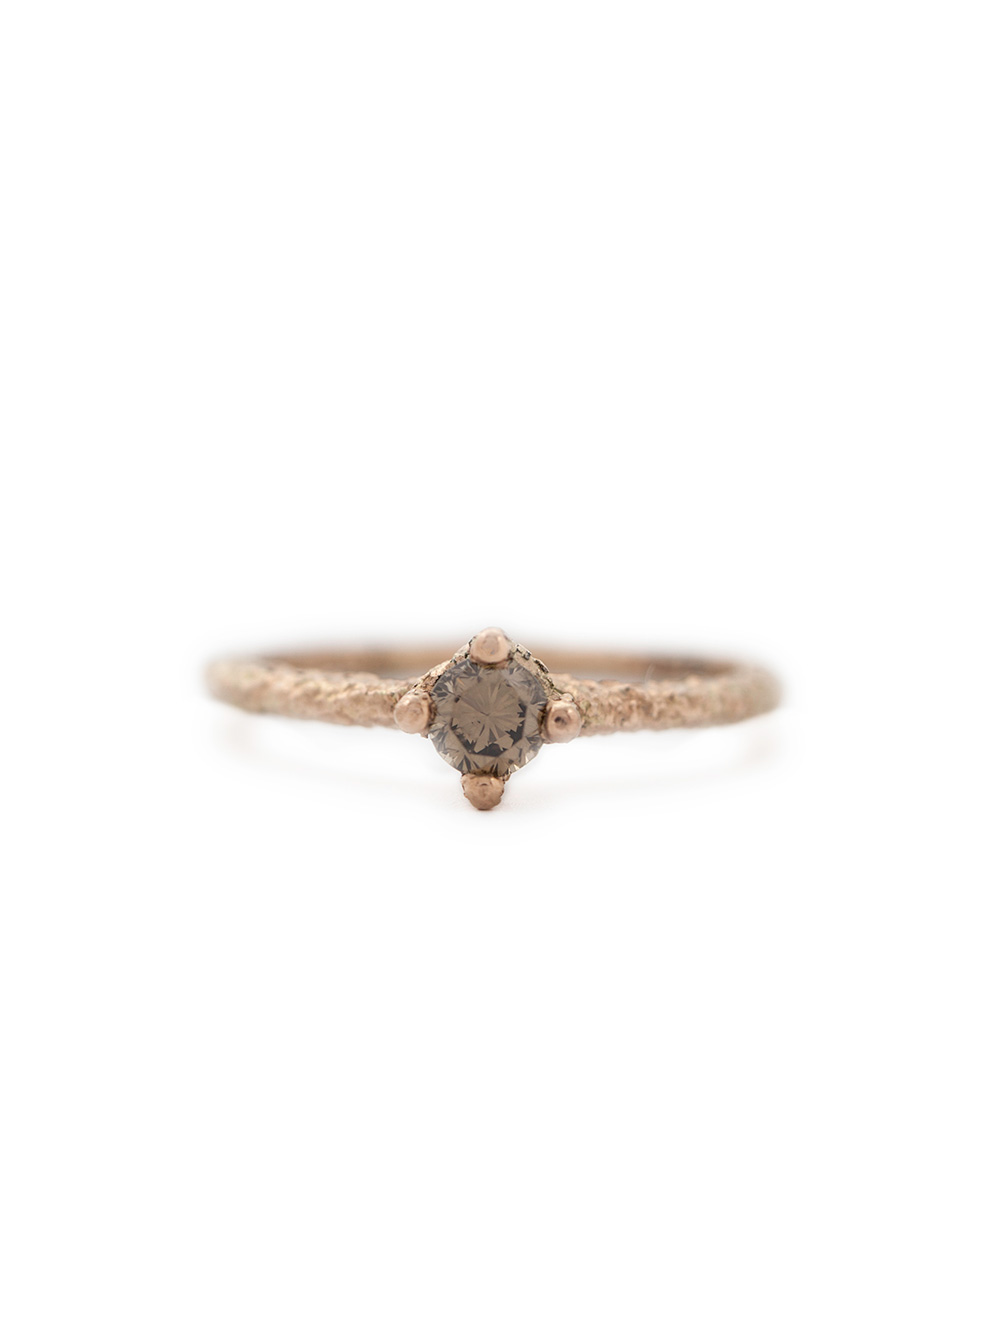 Cognac diamond ring in rose gold, £2120